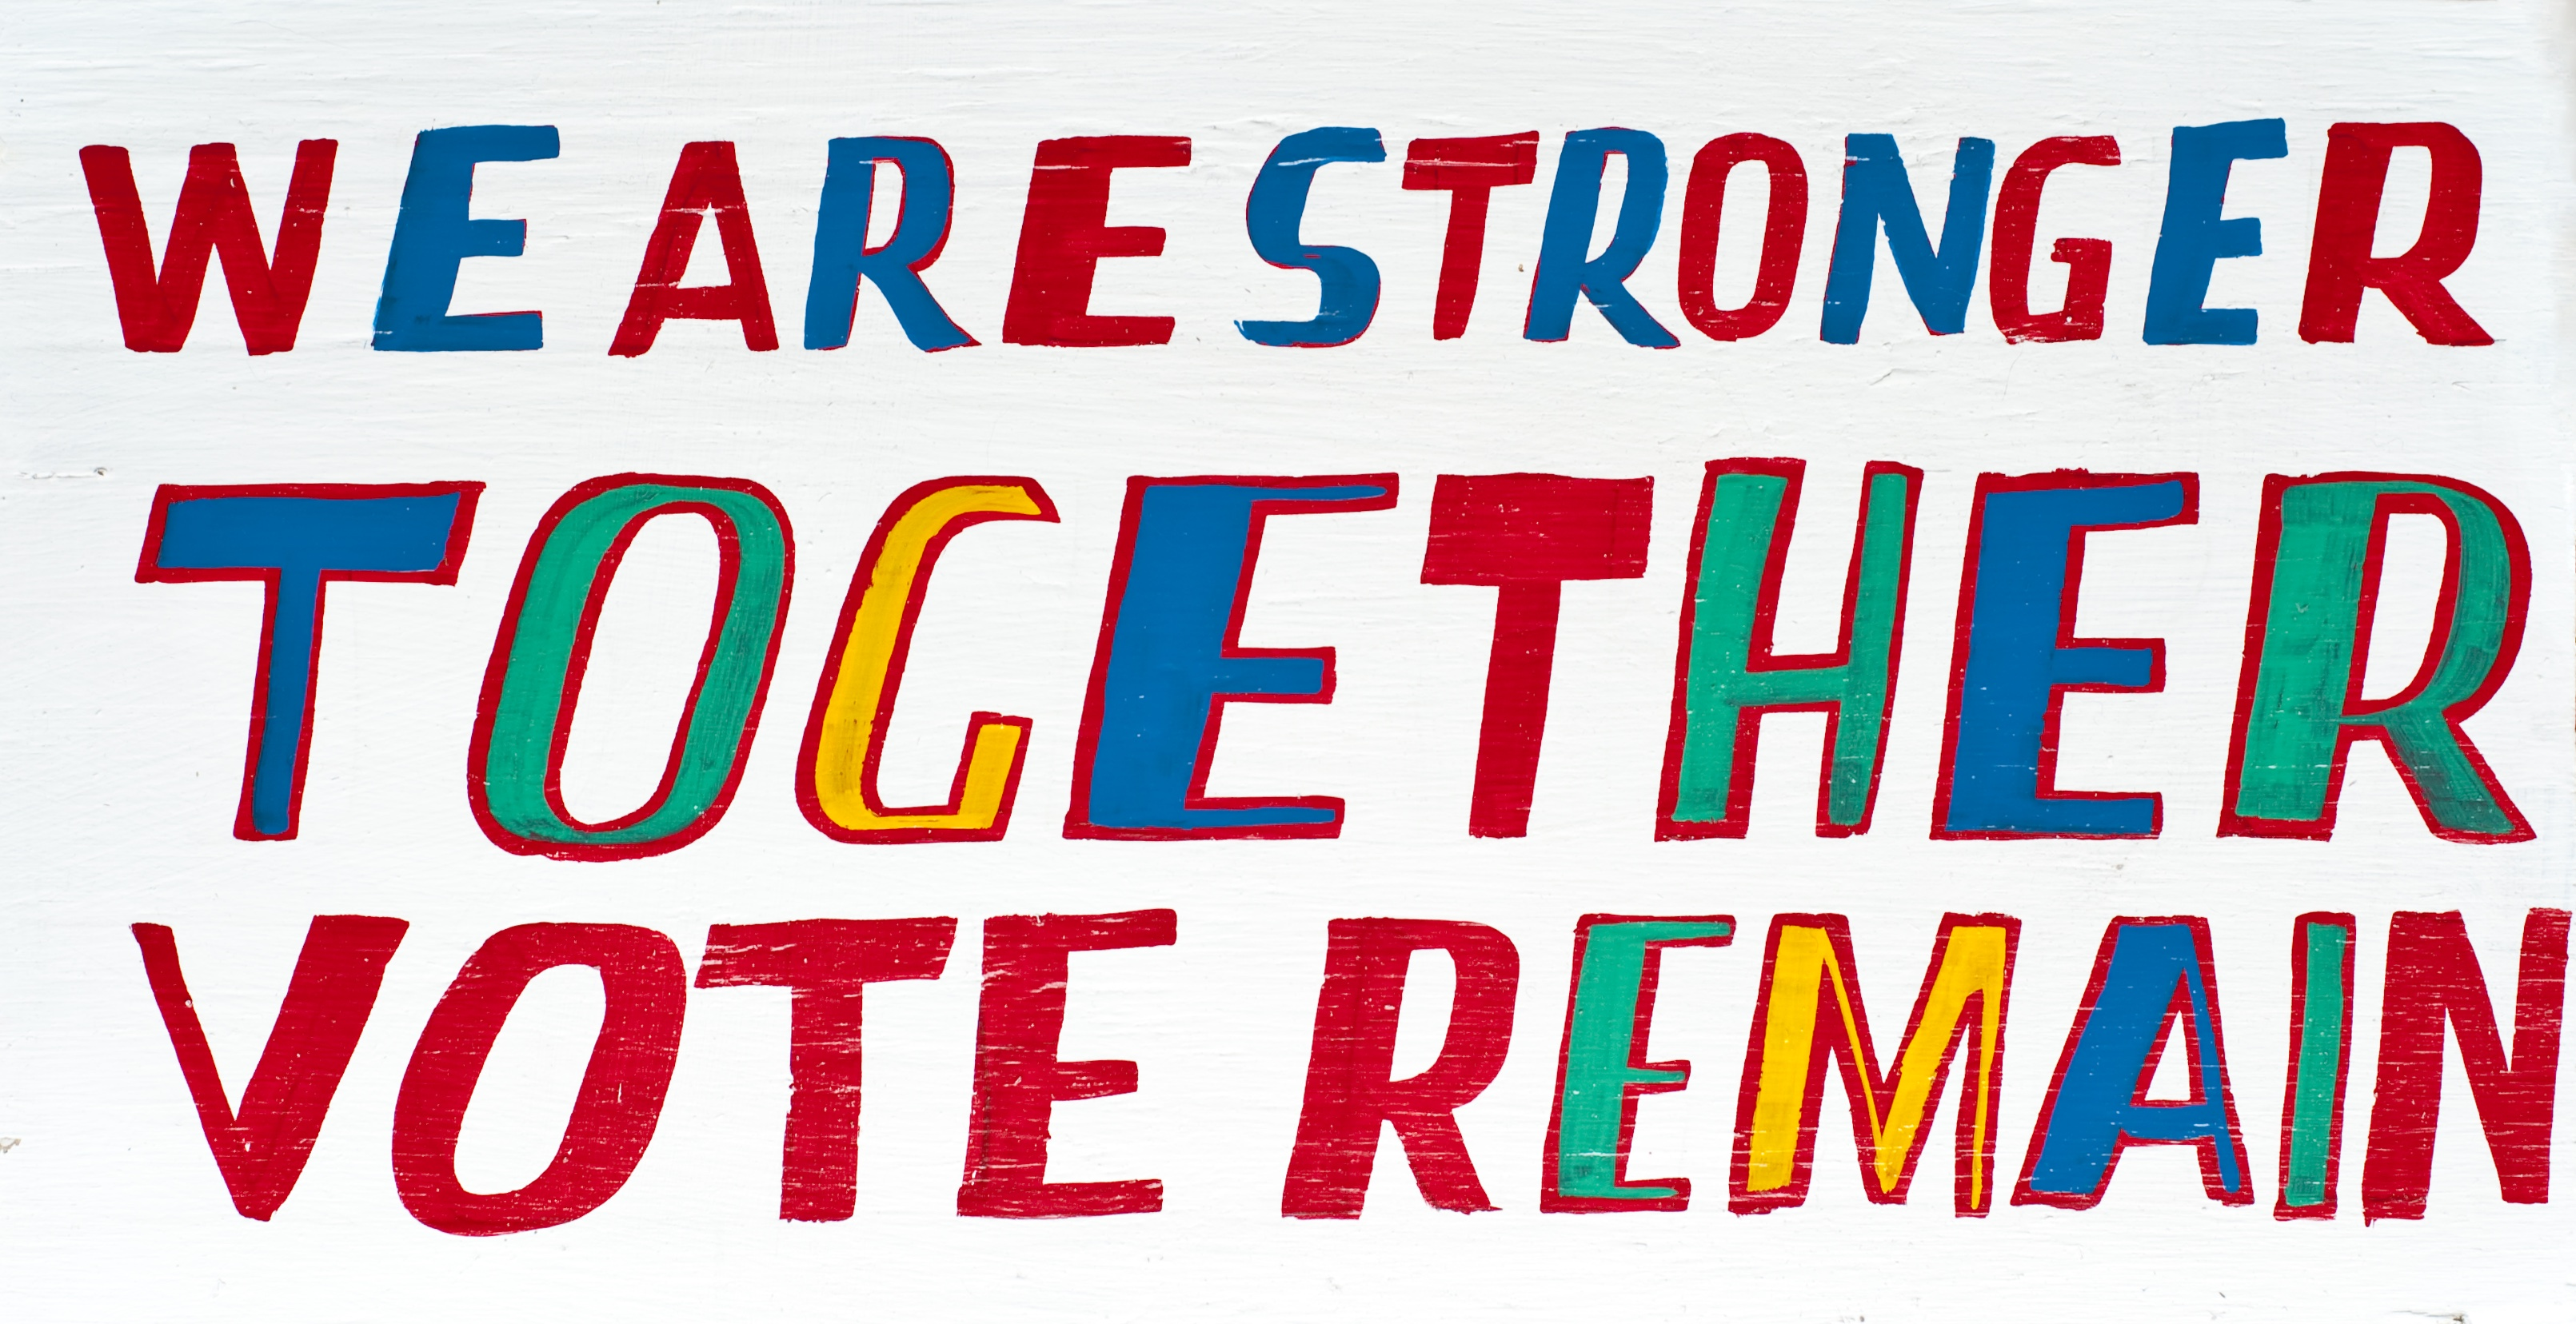 We_are_stronger_together_artwork.jpeg